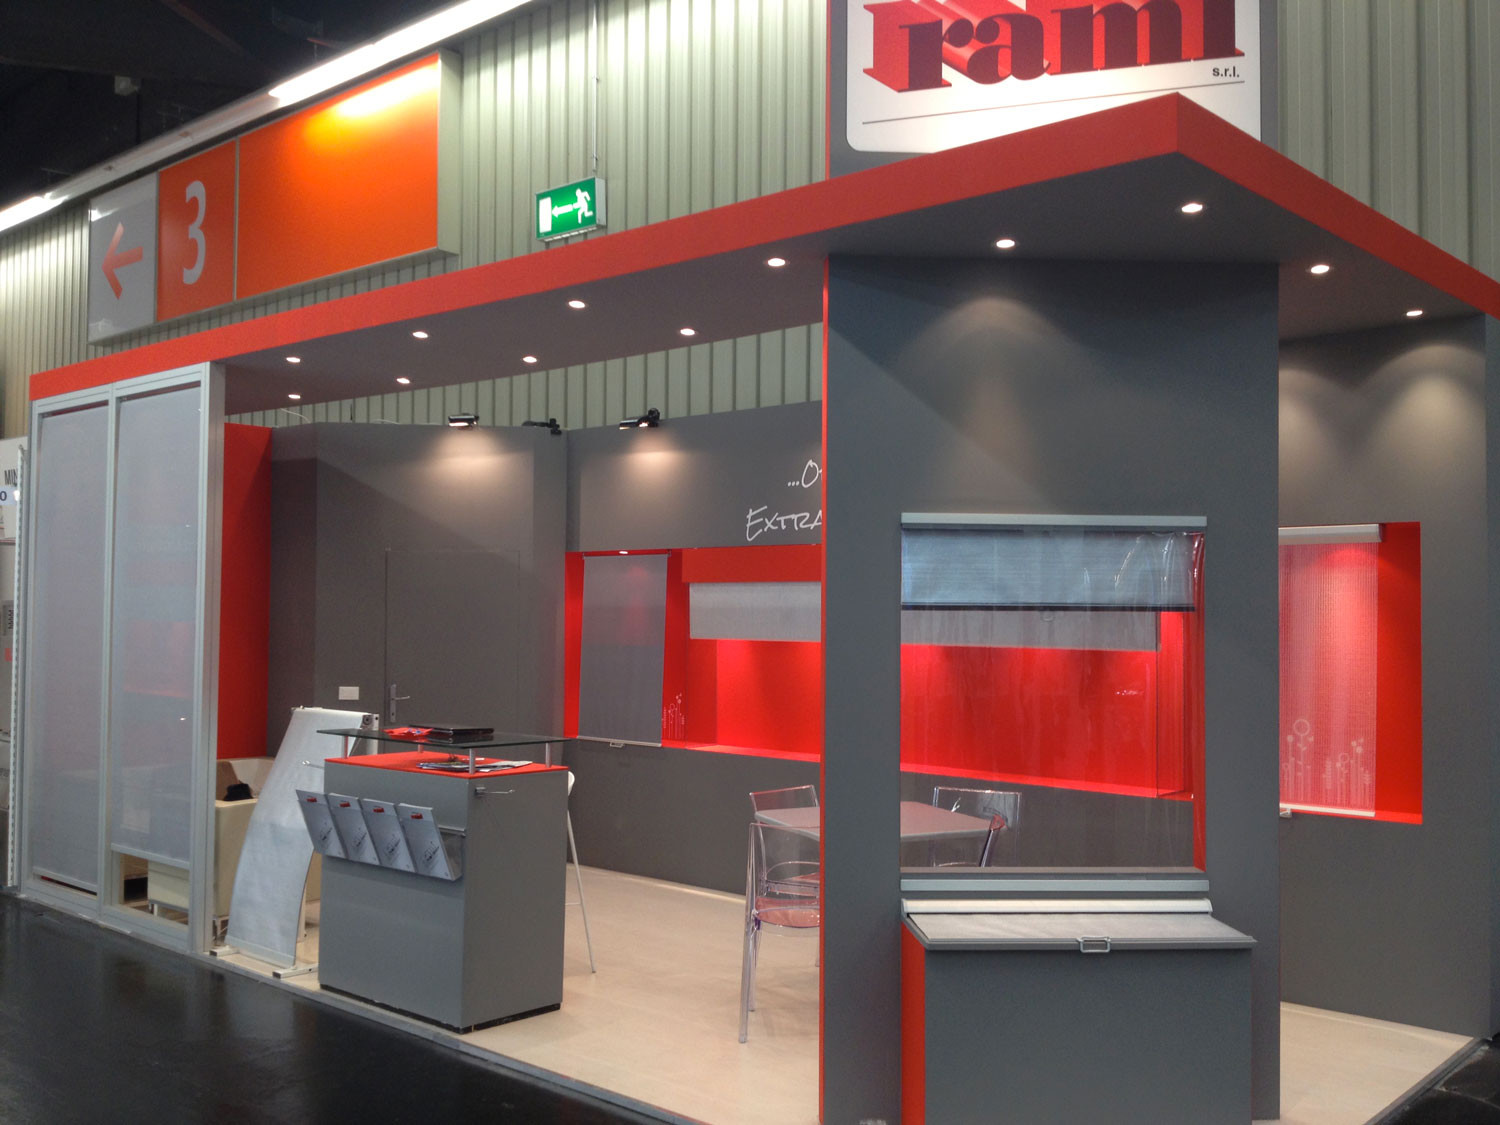 Chillventa 2012 - Officine Rami